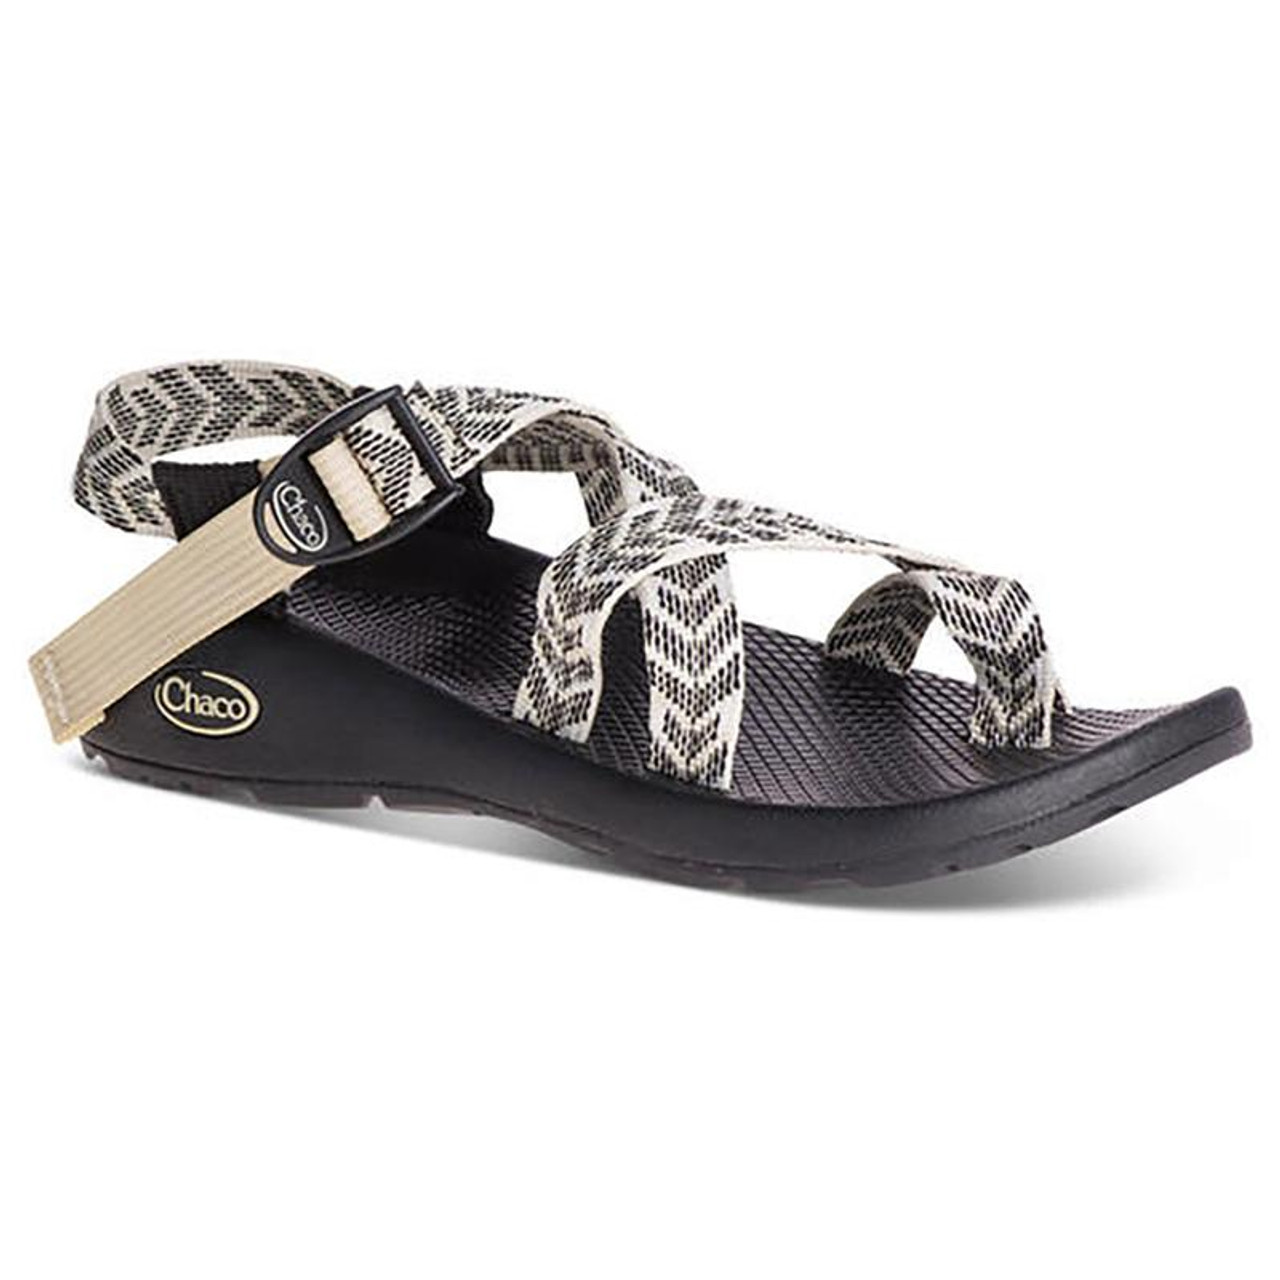 14c7d003ef44 Chaco Women's Sandal - Z/2 Classic - Trine Black and White - Surf ...